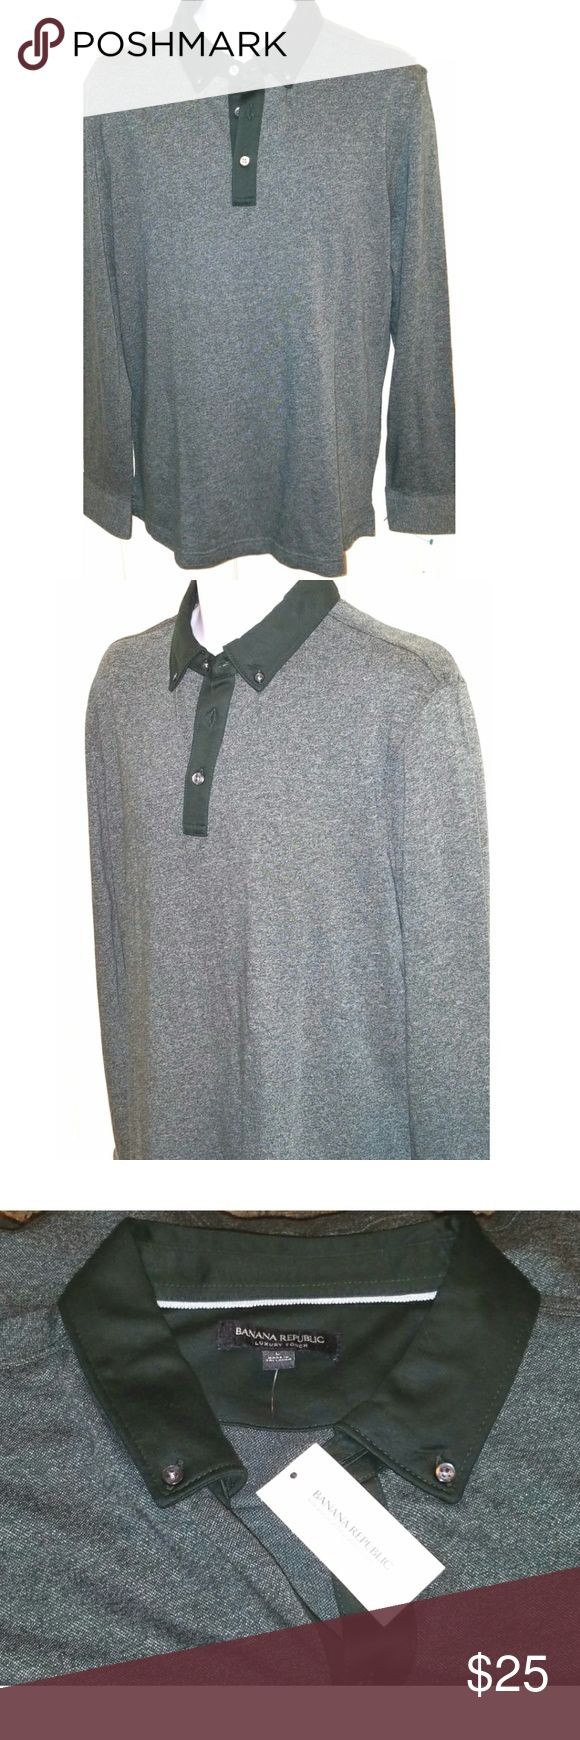 NWT Banana Republic Mens Long Sleeve Polo Shirt This is a mens large long sleeve polo shirt by Banana Republic. The chest measures 27 inches and the length is 31 inches. Banana Republic Shirts Polos